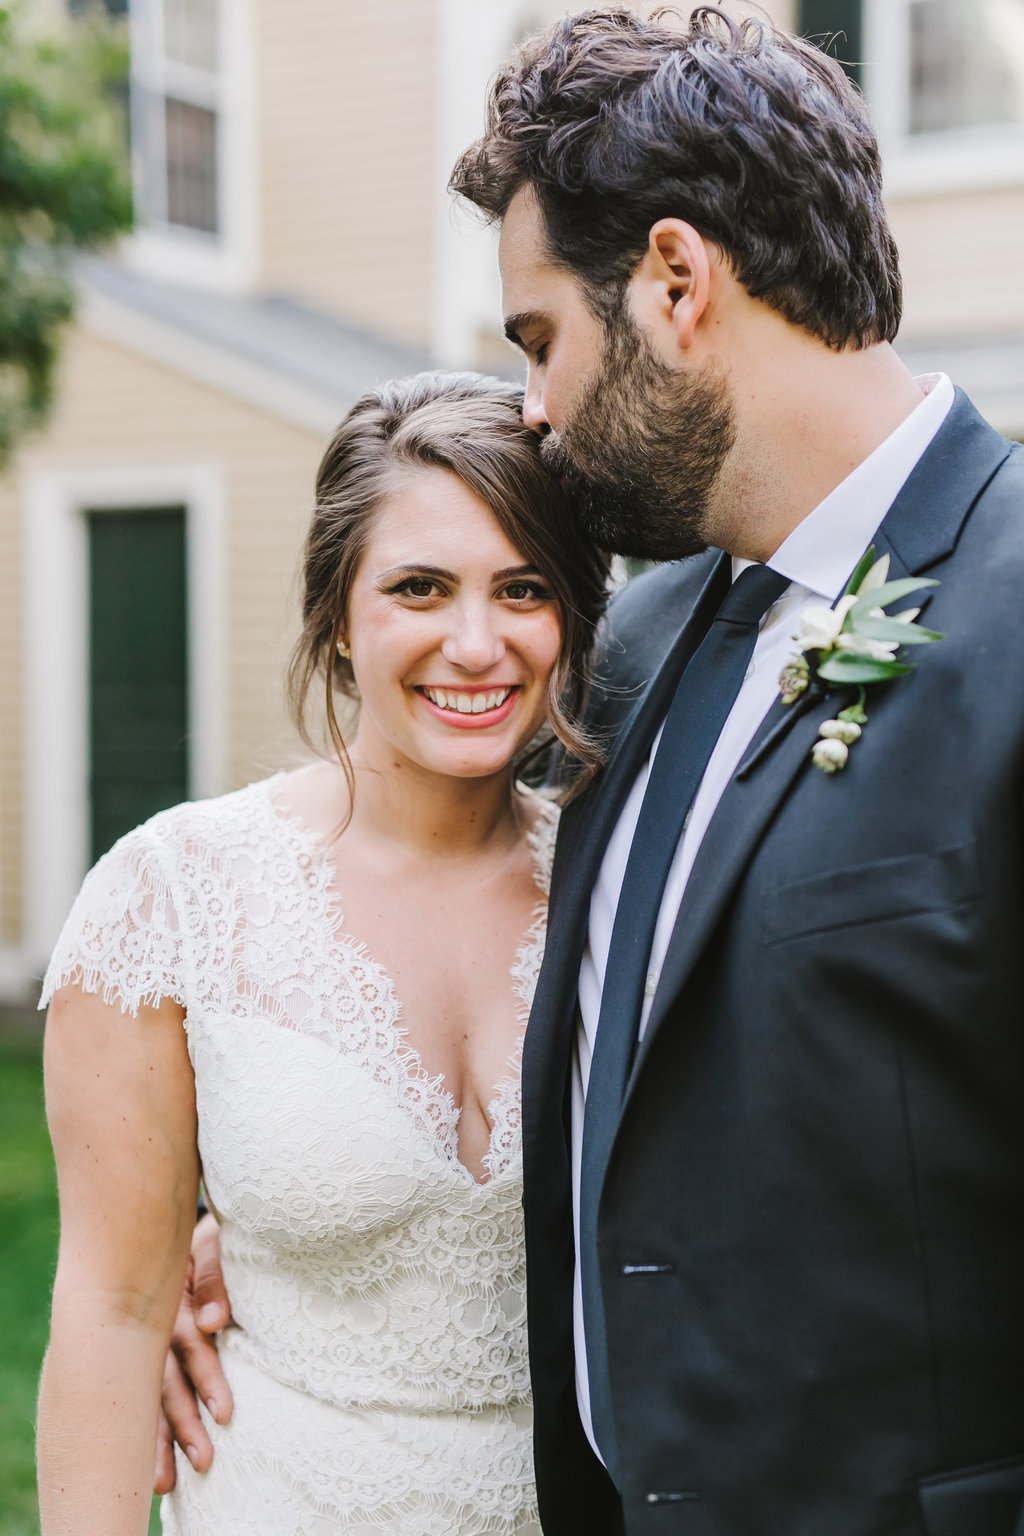 MaryBeth+EthanWedding-EmilyTebbettsPhotography-470.jpg